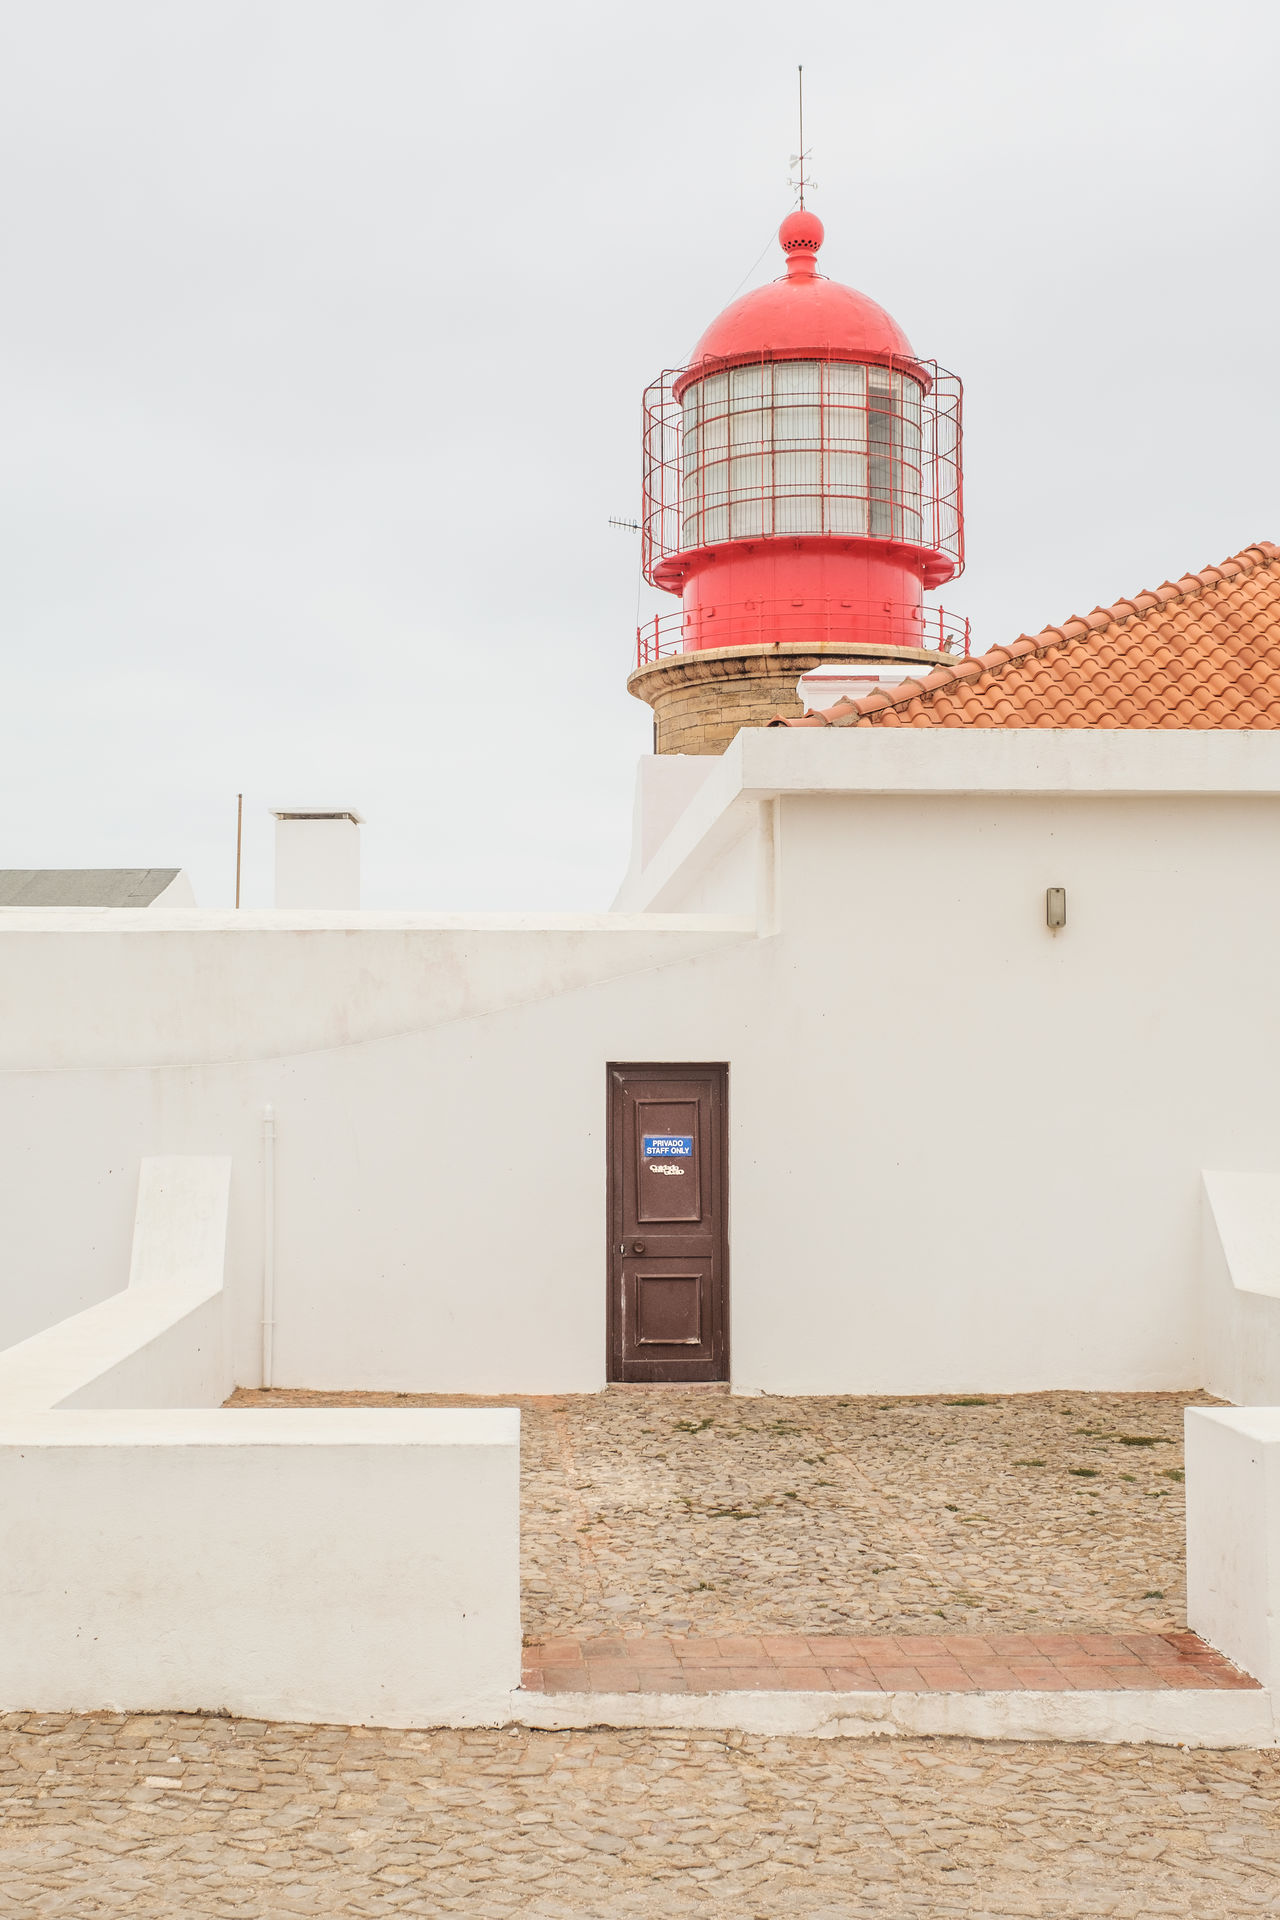 Algarve, Portugal Architecture Building Exterior Built Structure Day Lighthouse No People Outdoors Sky Whitewashed